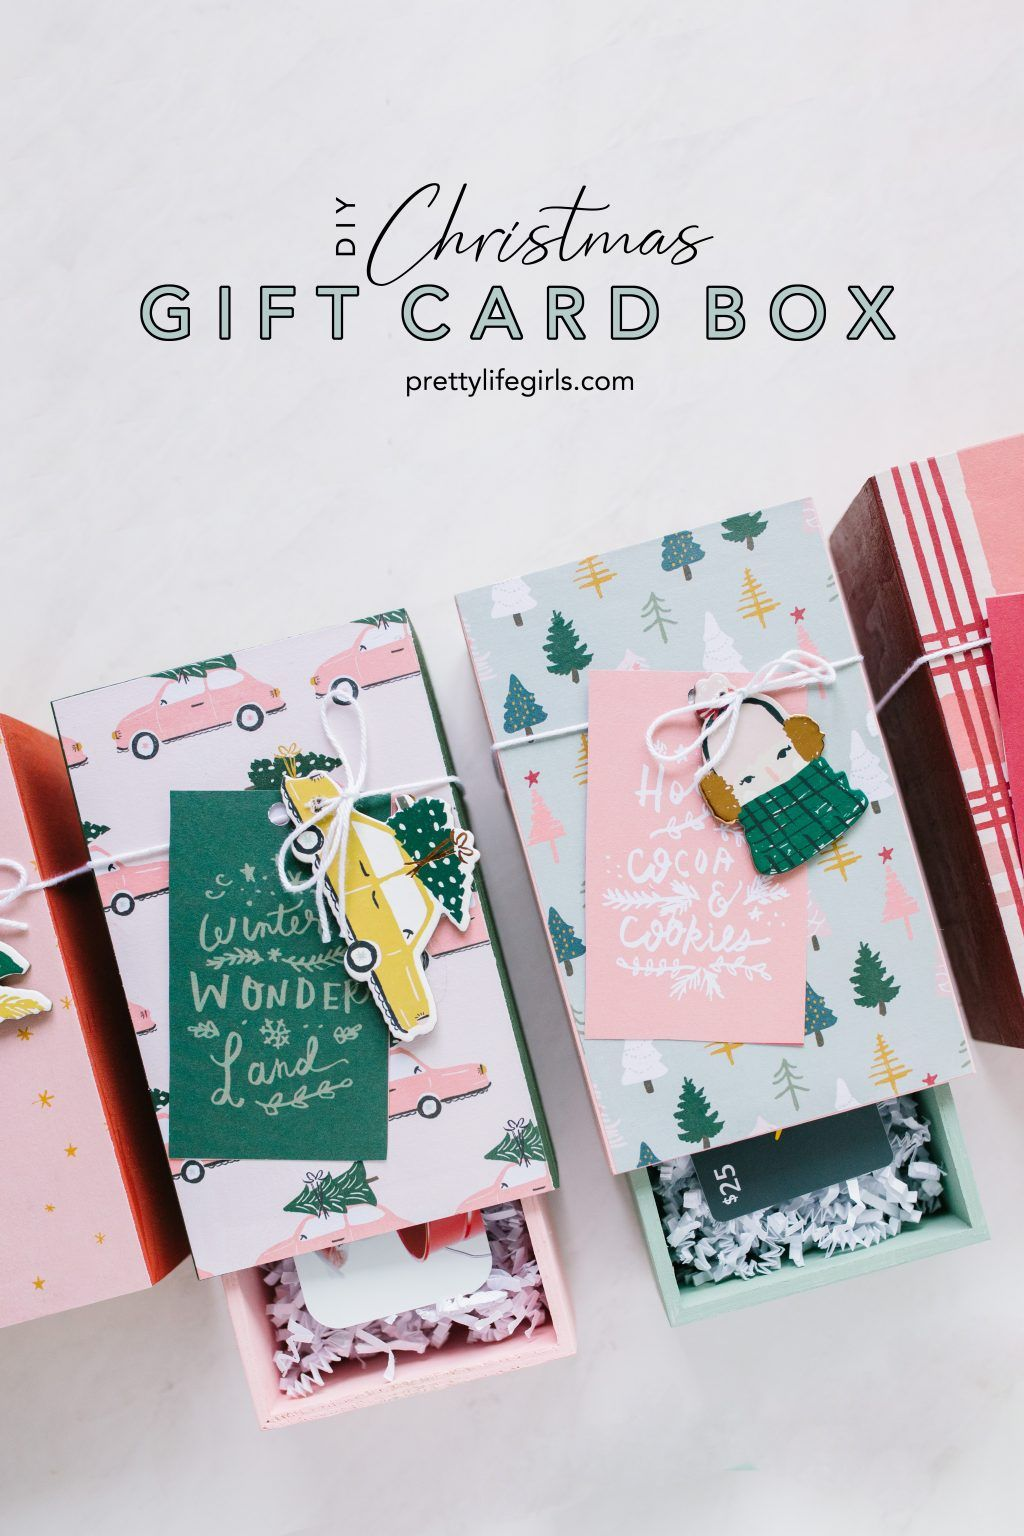 How To Make An Easy Diy Gift Card Box The Pretty Life Girls Christmas Gift Card Easy Diy Gifts Diy Gift Card